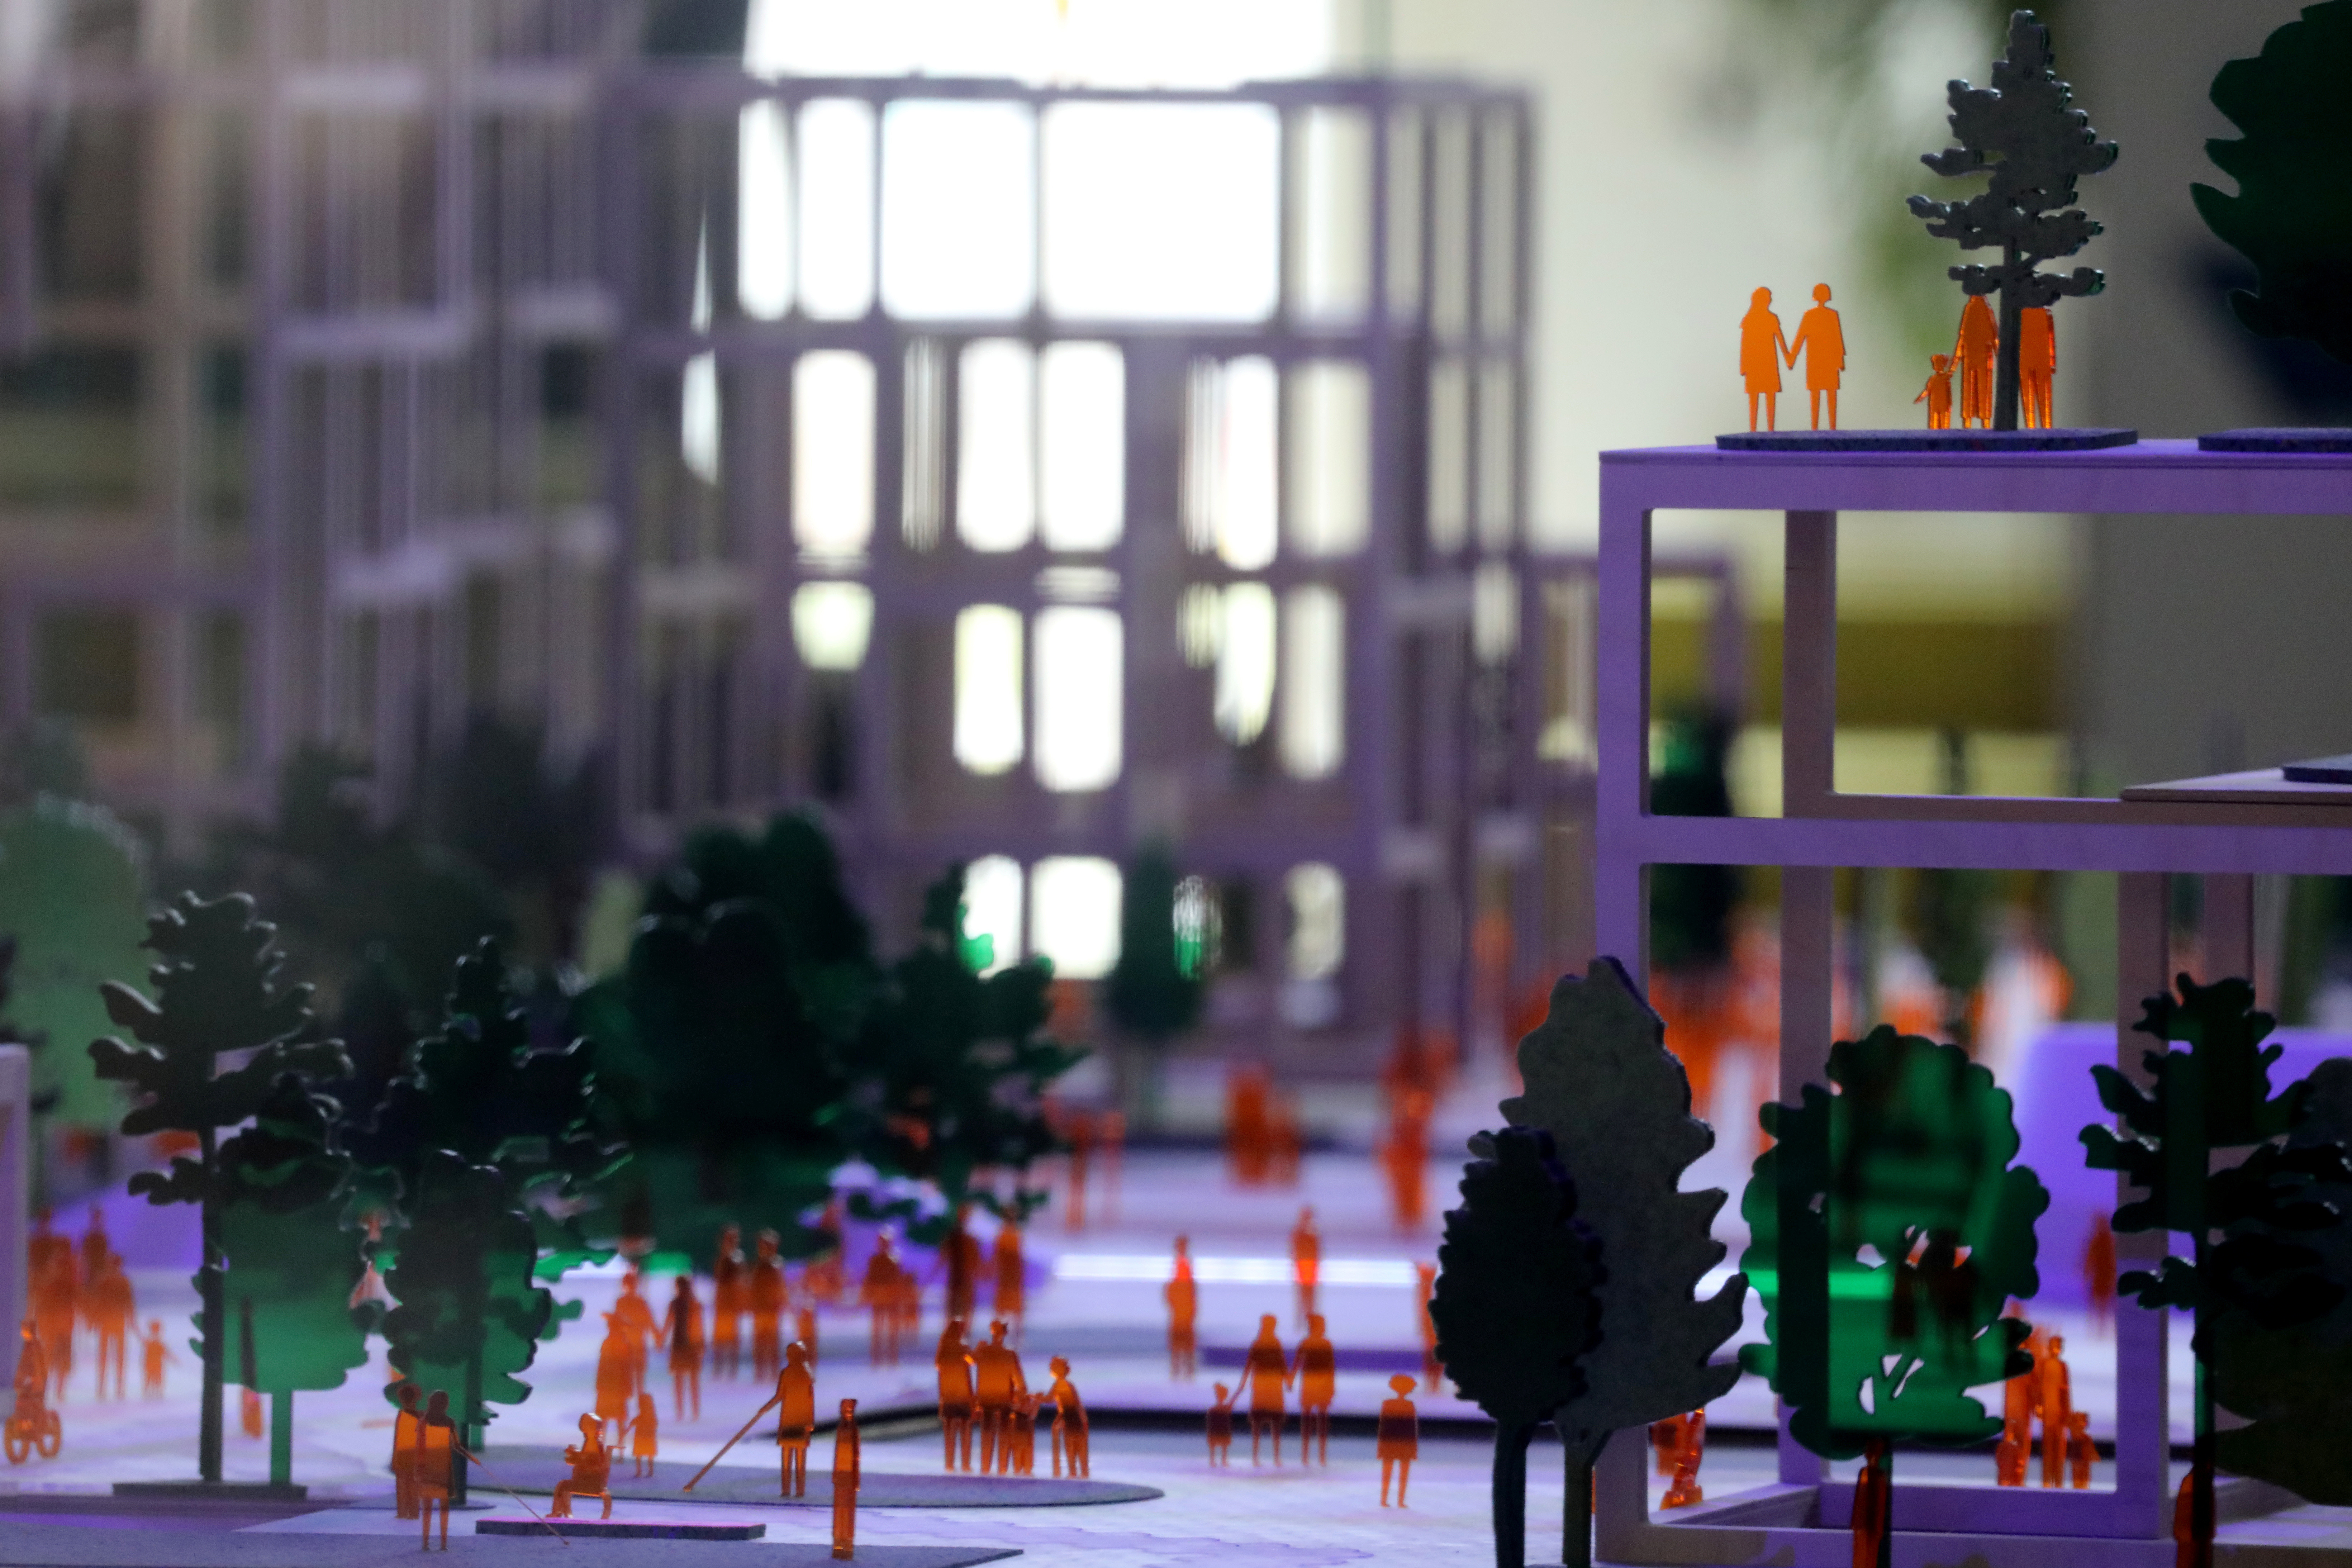 """Building models are seen at the offices of Alphabet's Sidewalk Labs """"smart city"""" after the company announced it has pulled out of its project due to economic uncertainty in Toronto, Ontario, Canada May 7, 2020.  REUTERS/Chris Helgren - RC2VJG91RKAK"""